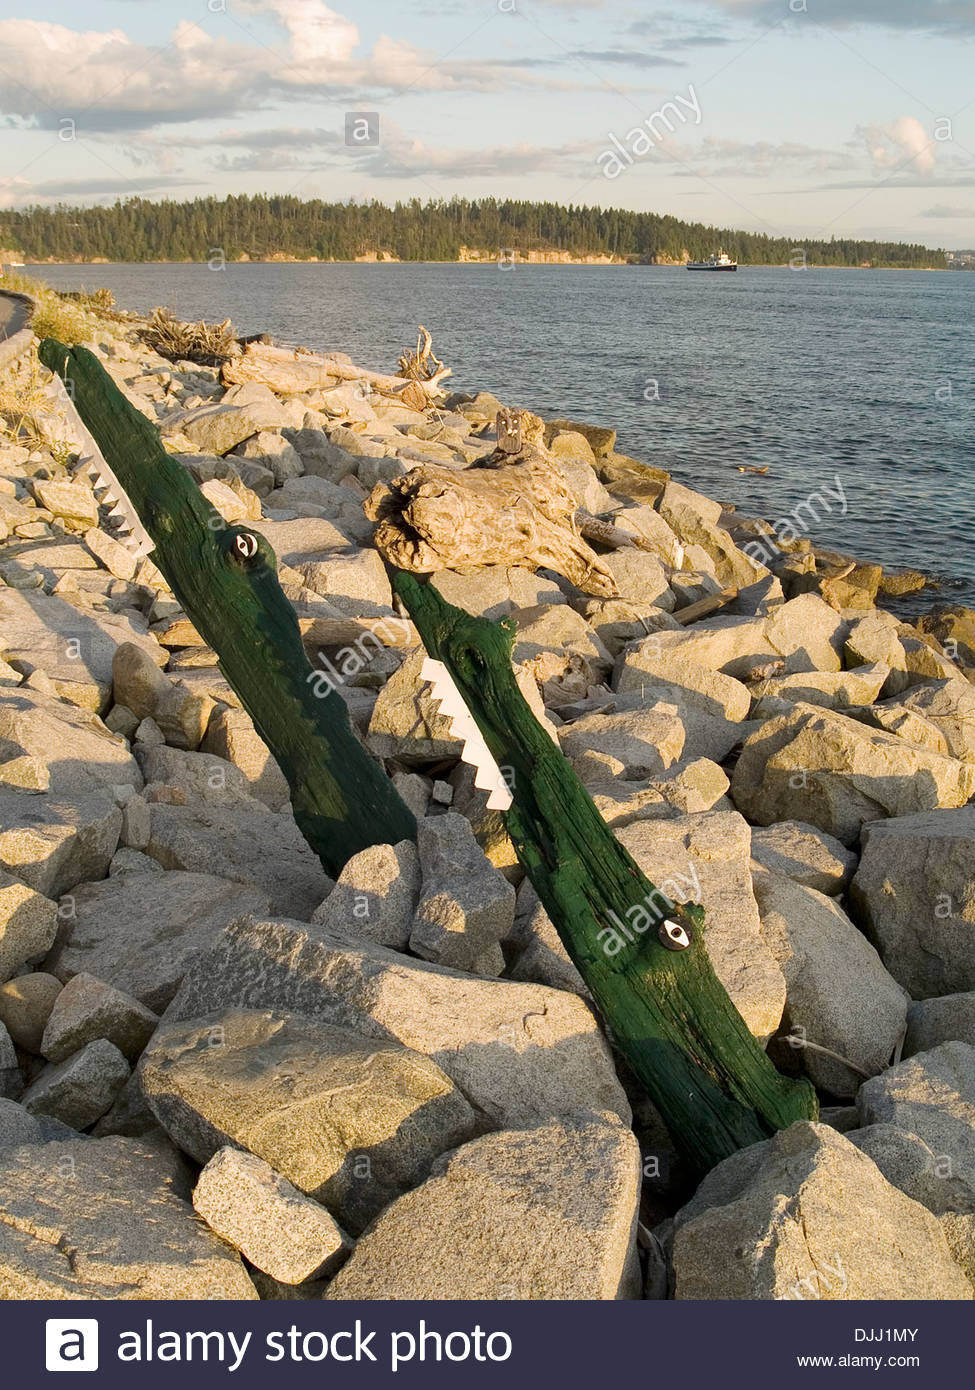 Two alligators from driftwood,Ambleside Promenade,Vancouver - Stock Image